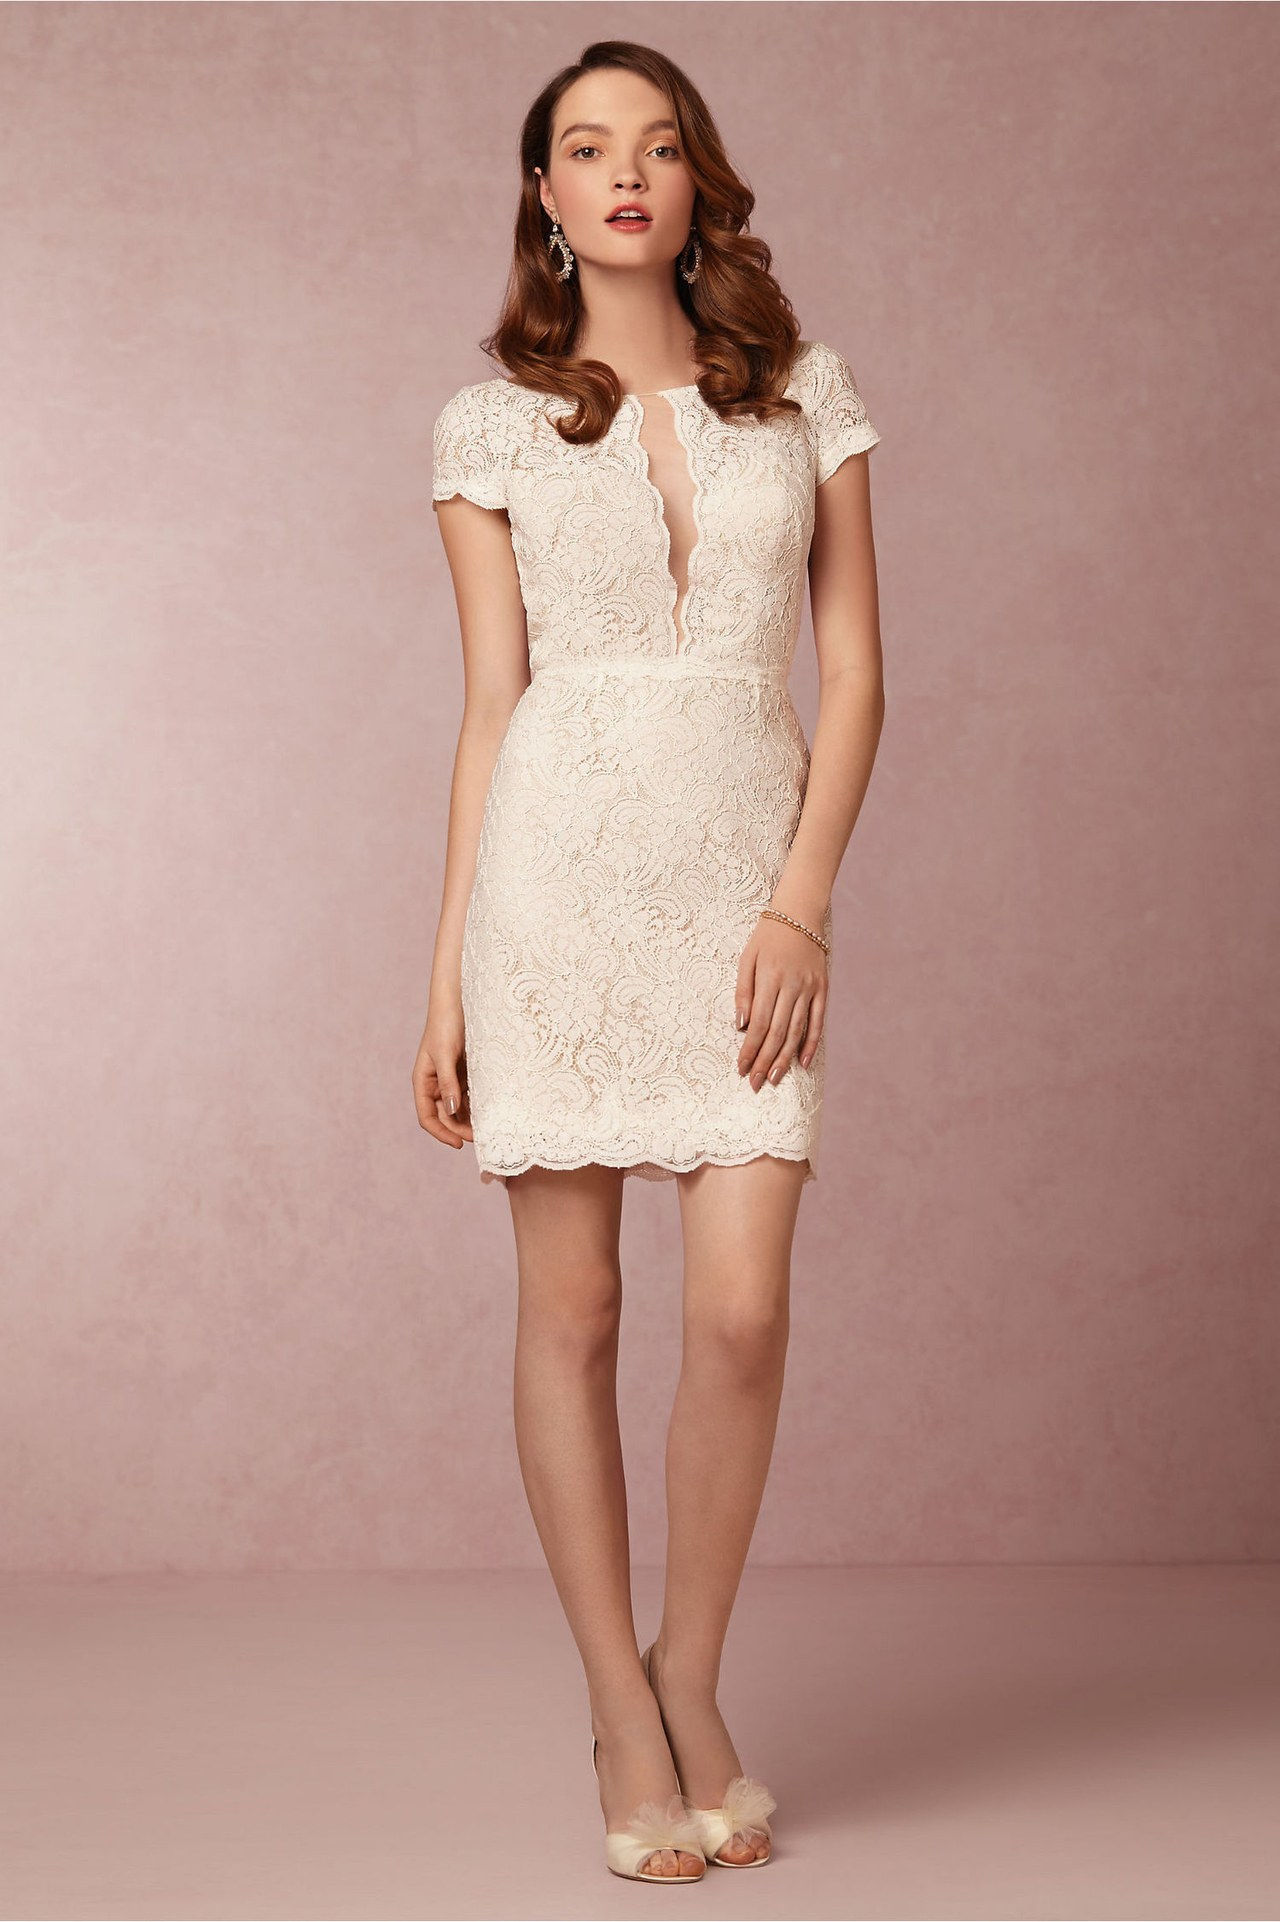 1b 2 in 1 wedding dresses wedding gowns mix and match wedding dresses bhldn 0430 courtesy